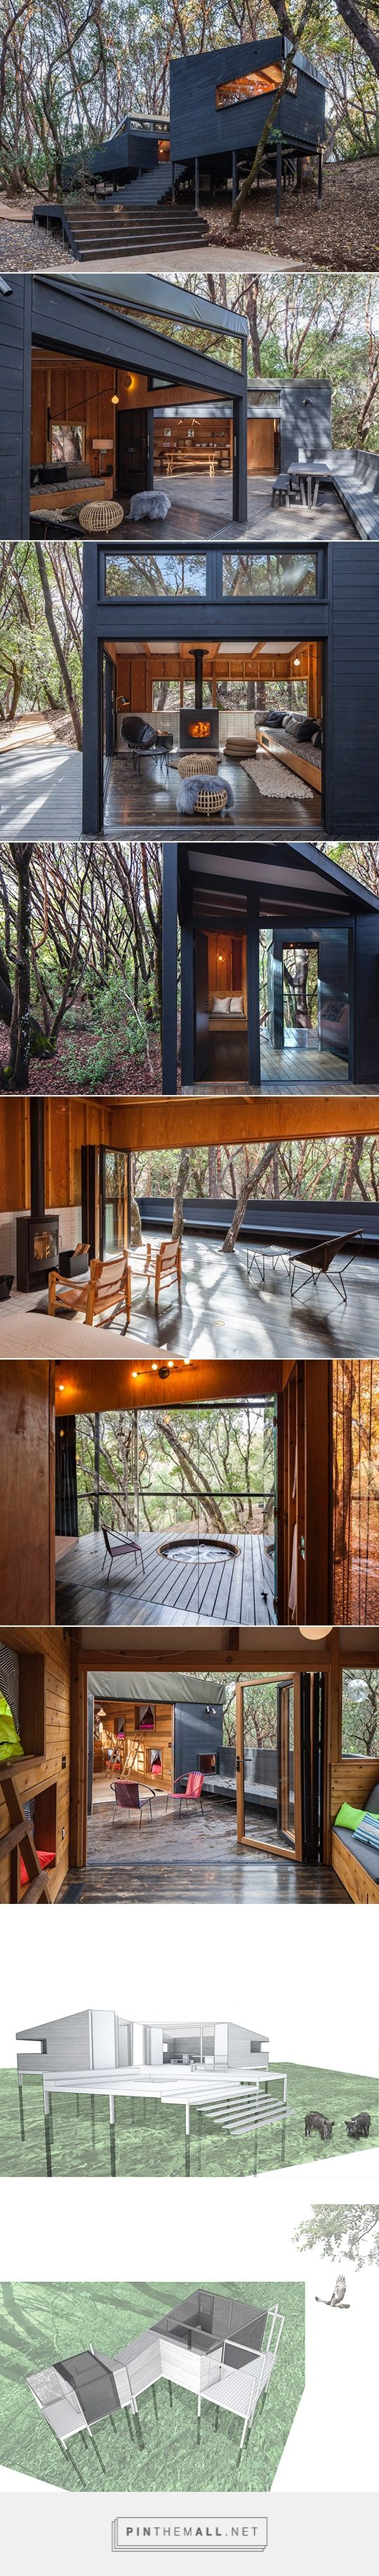 Forest House | envelopeA+D